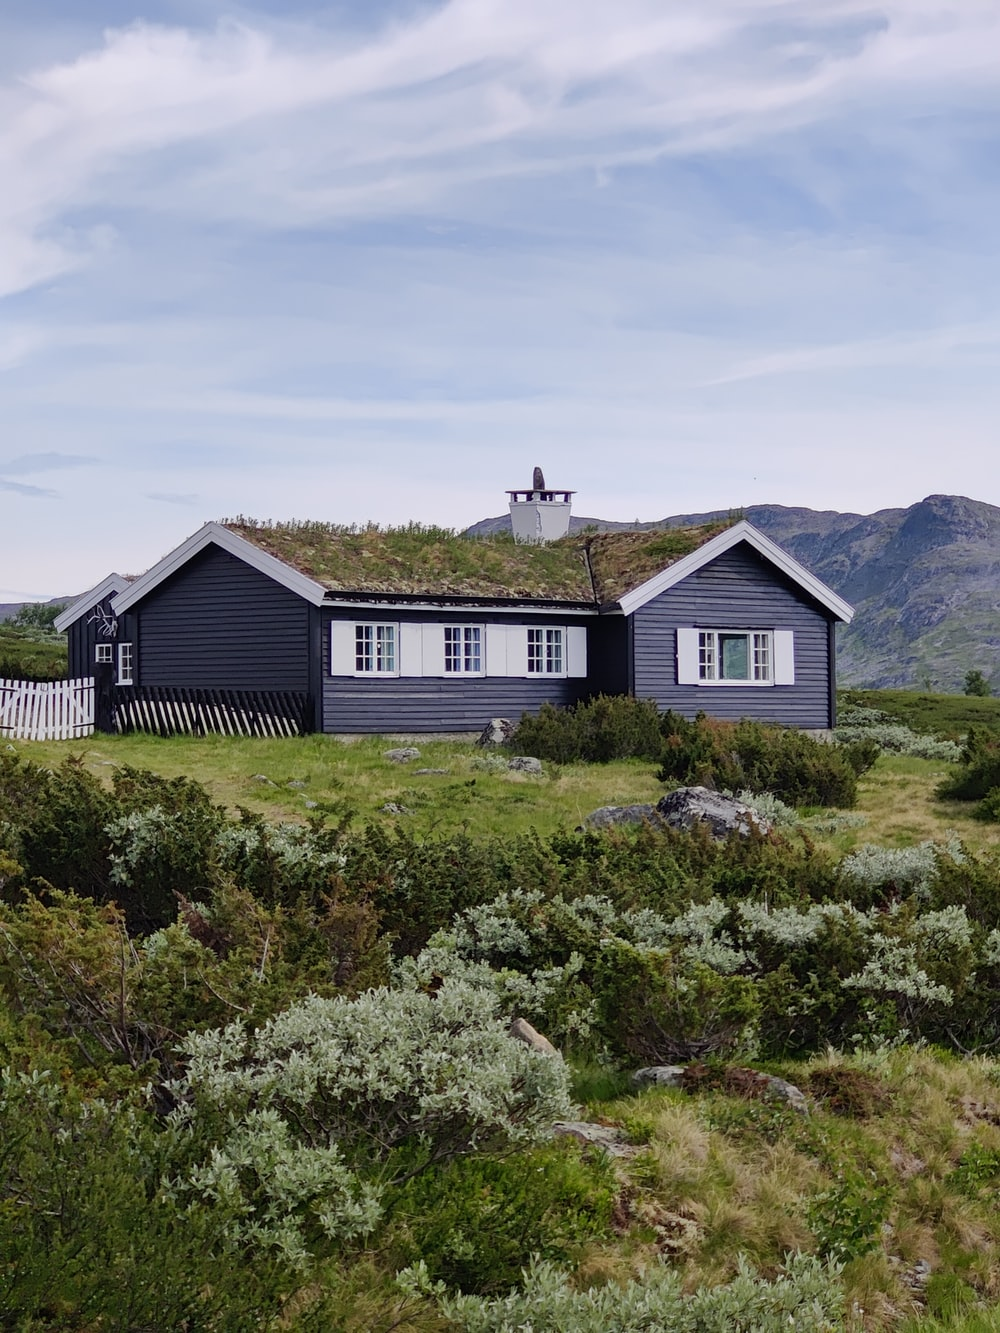 white and black wooden house on green grass field during daytime